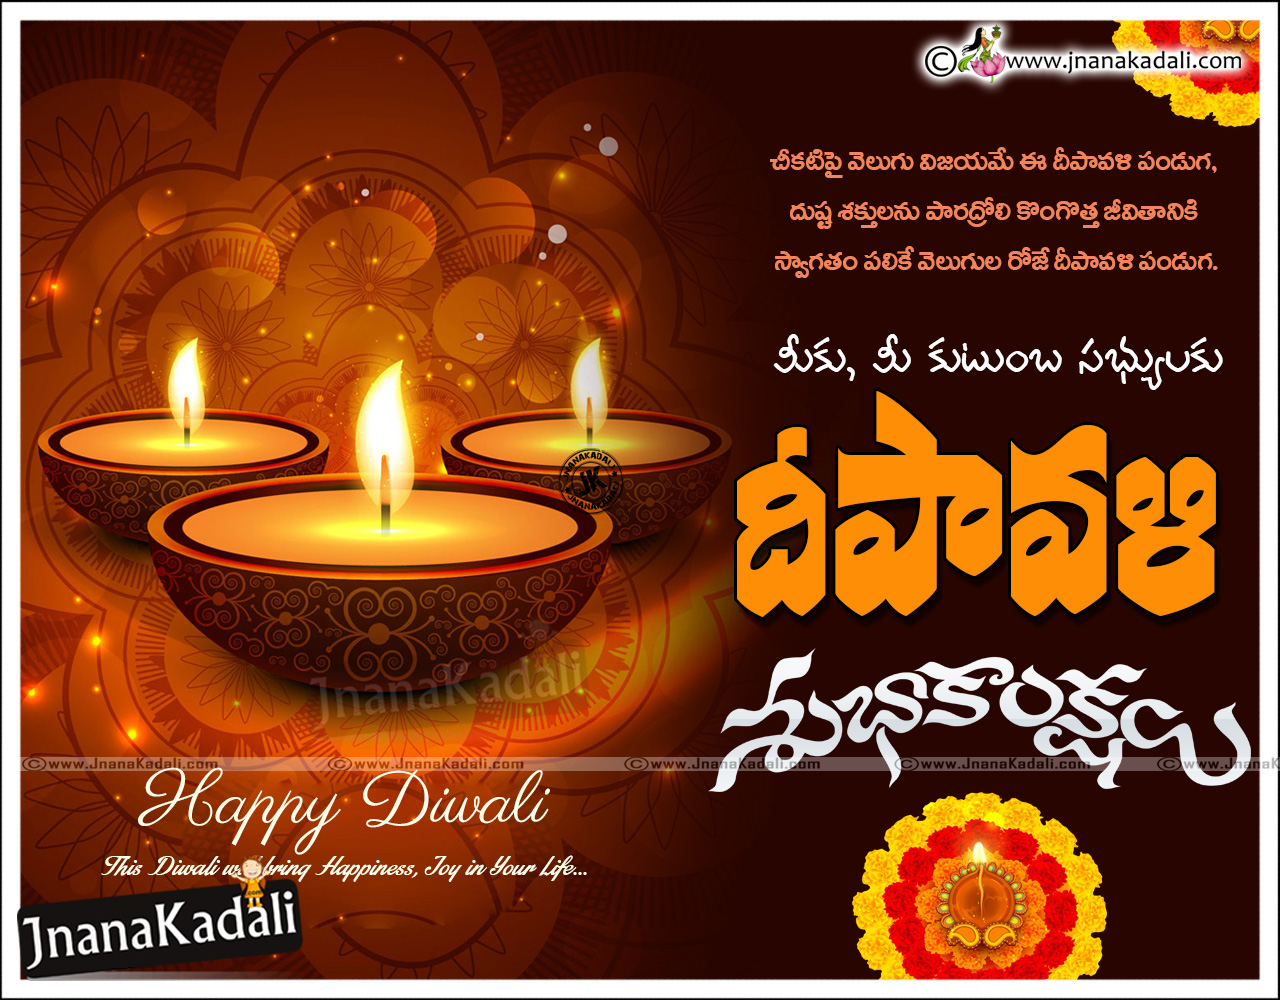 Deepavali Greetings Quotes In Telugu 2016 Diwali Greetings With Hd